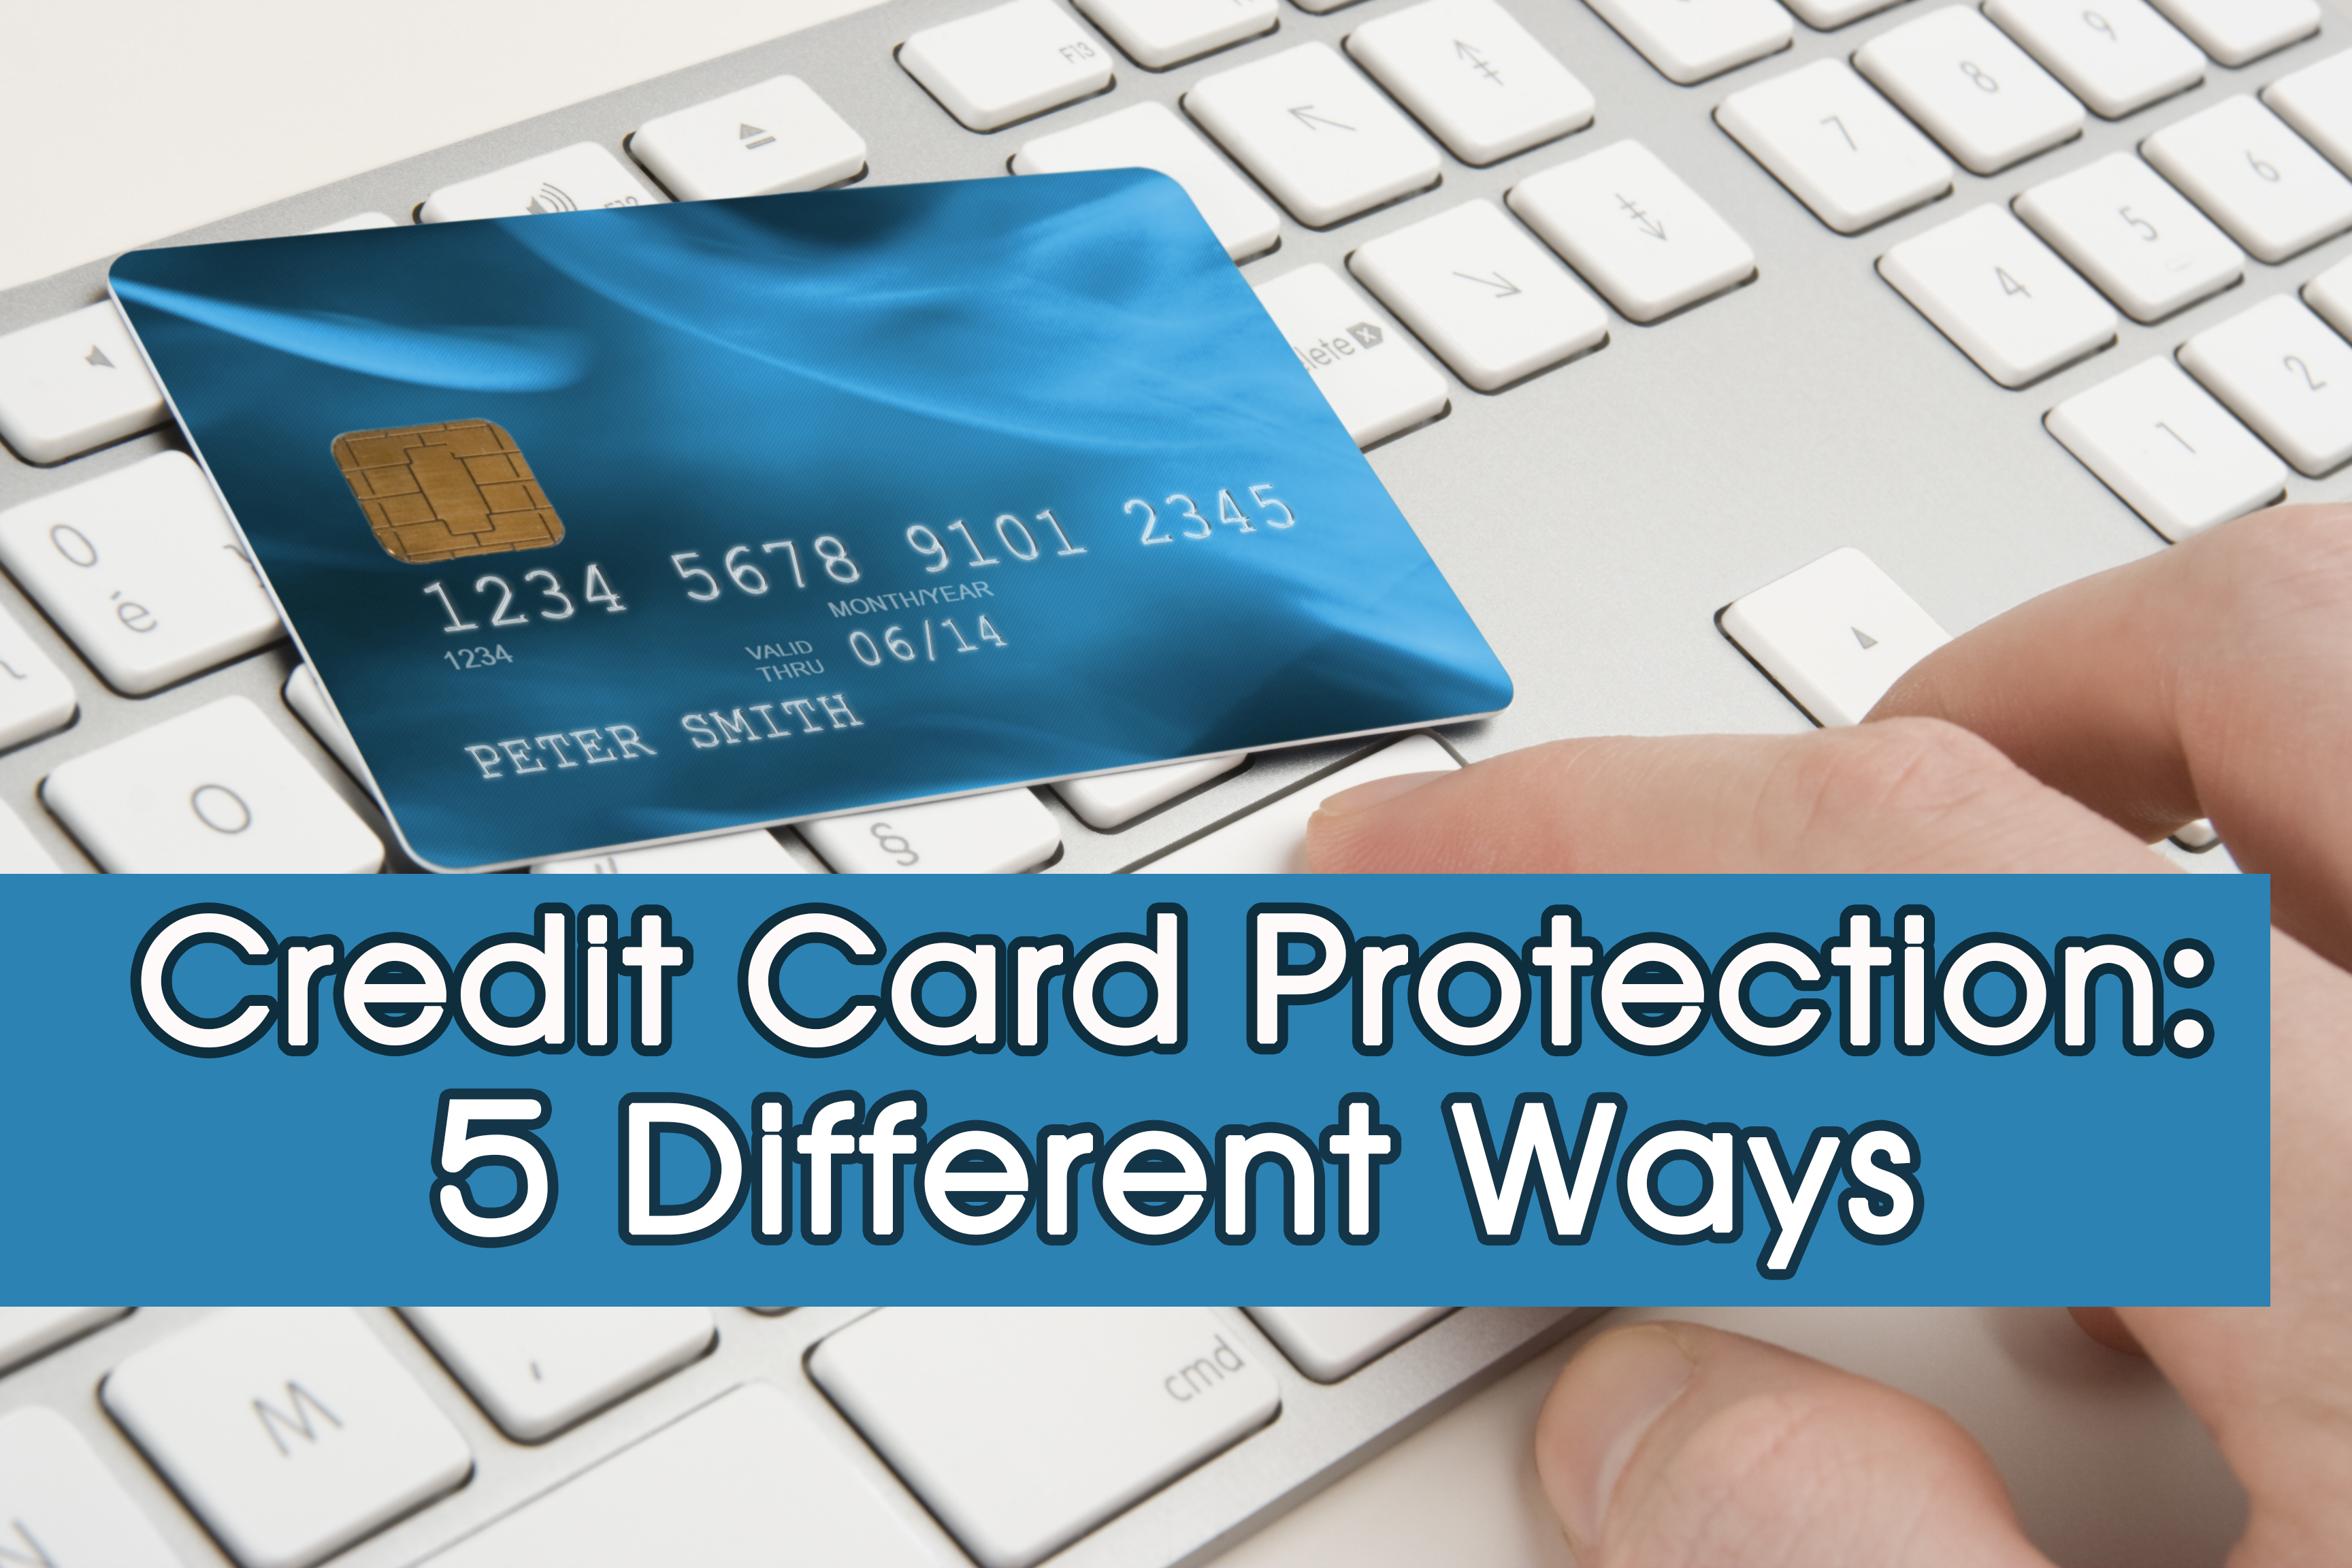 Credit-Card-Protection-5-different-ways